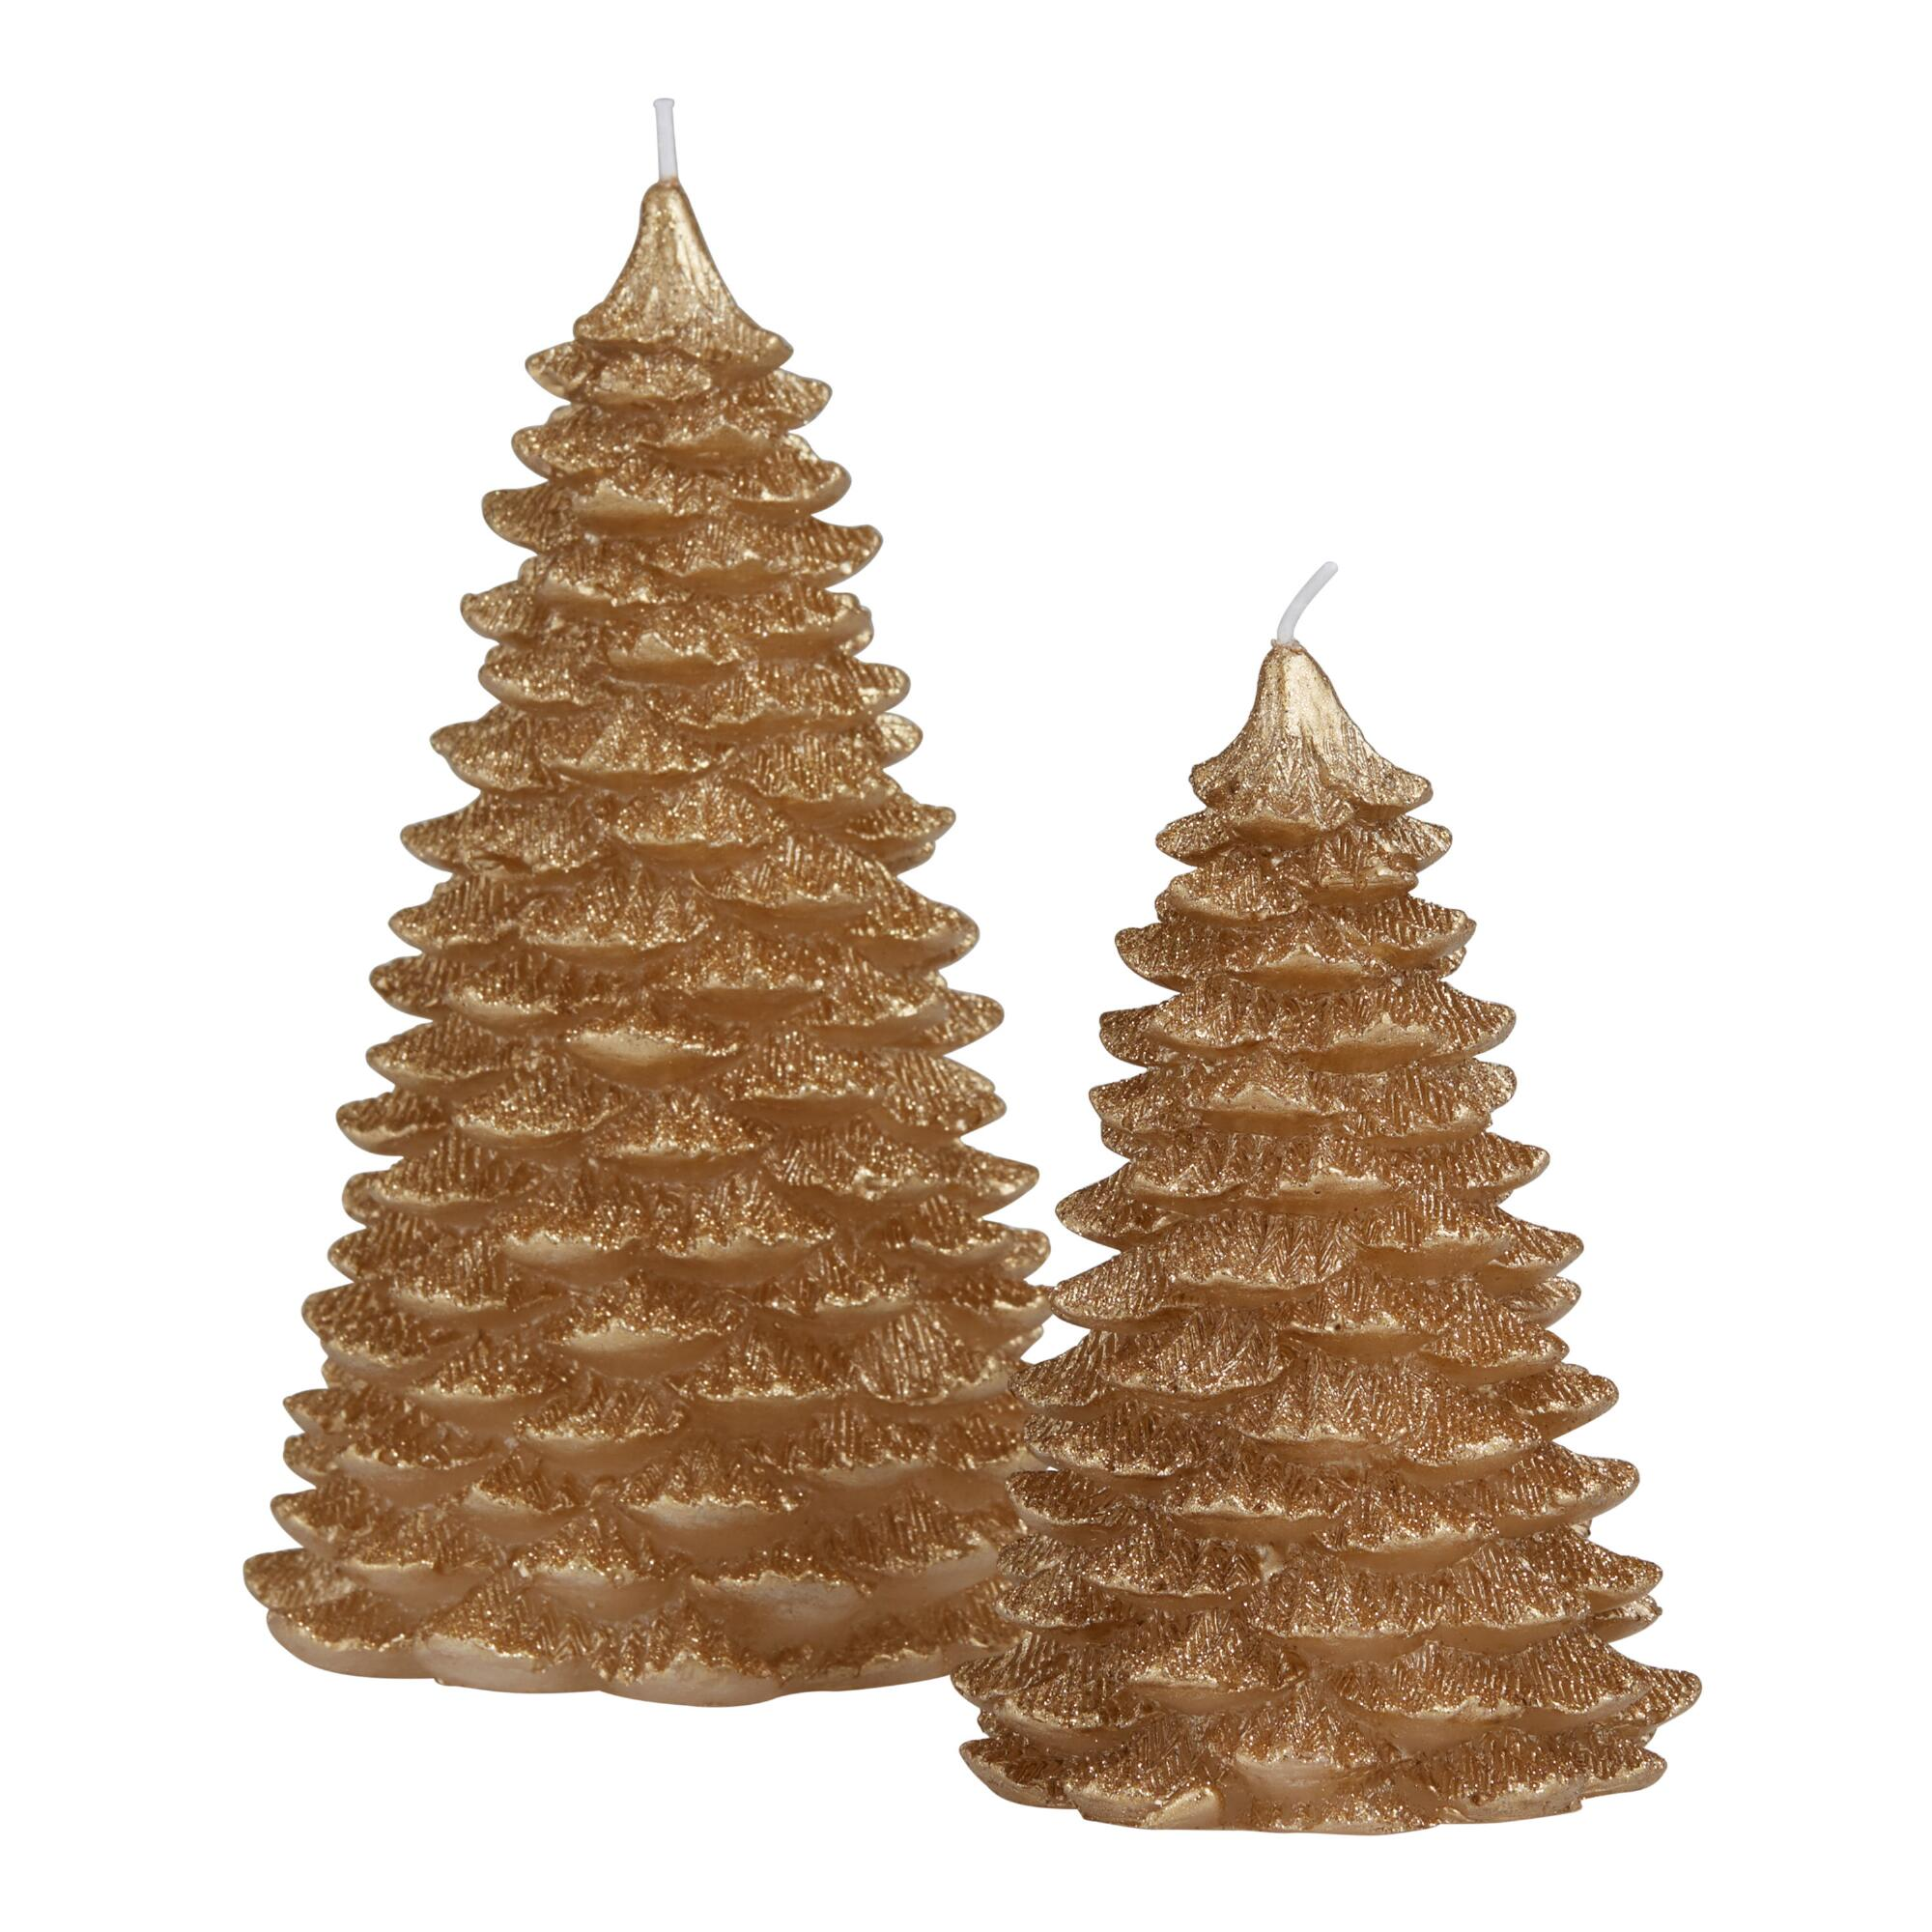 Gold Glittered Christmas Tree Candle $6.99-$9.99